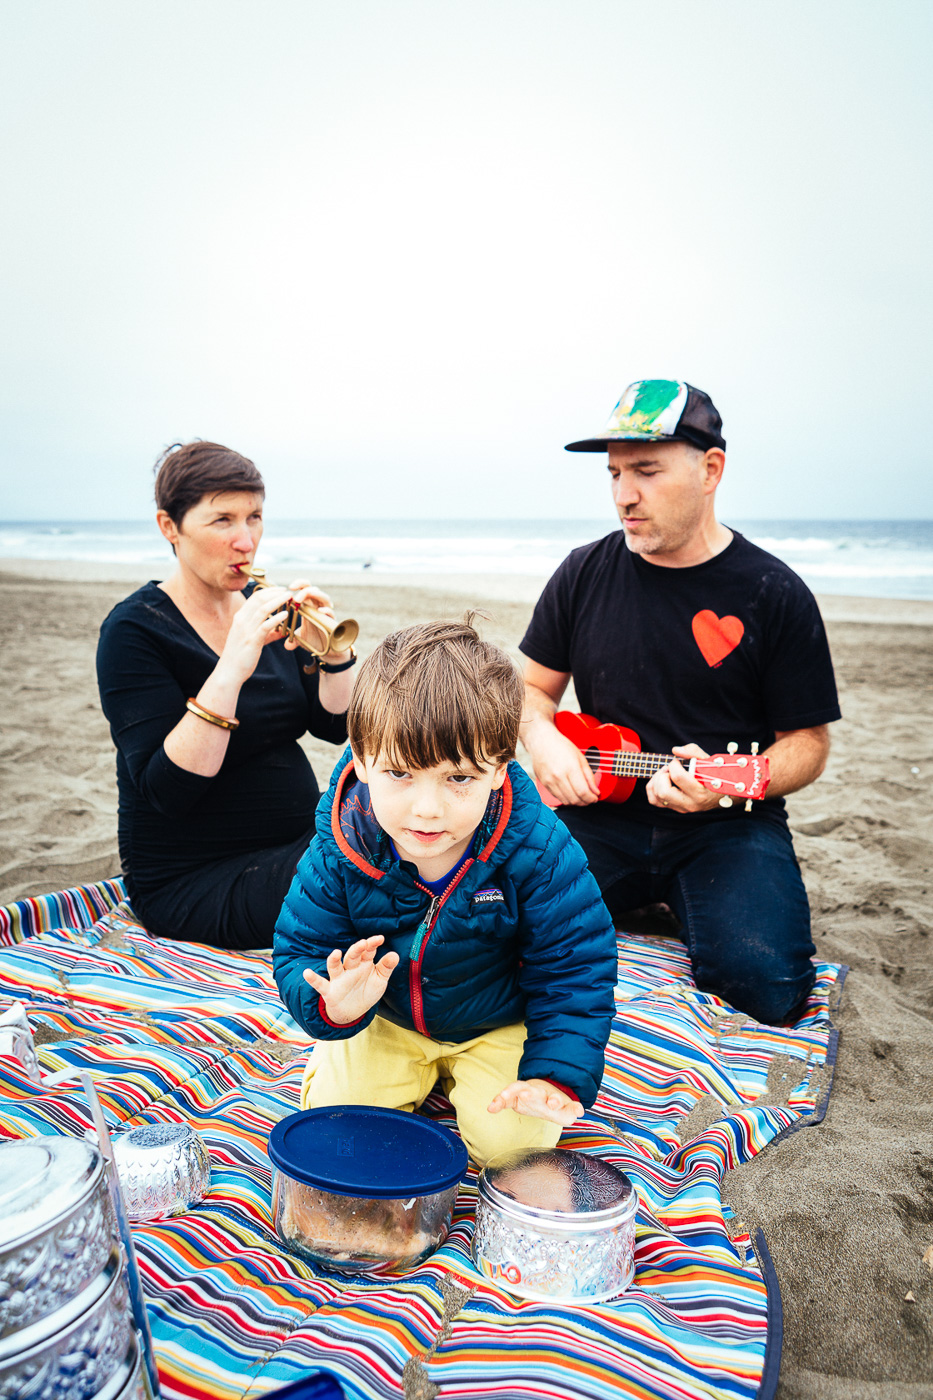 Authentic-Bay-Area-Family-Photography-Lifestyle-Photography-San-